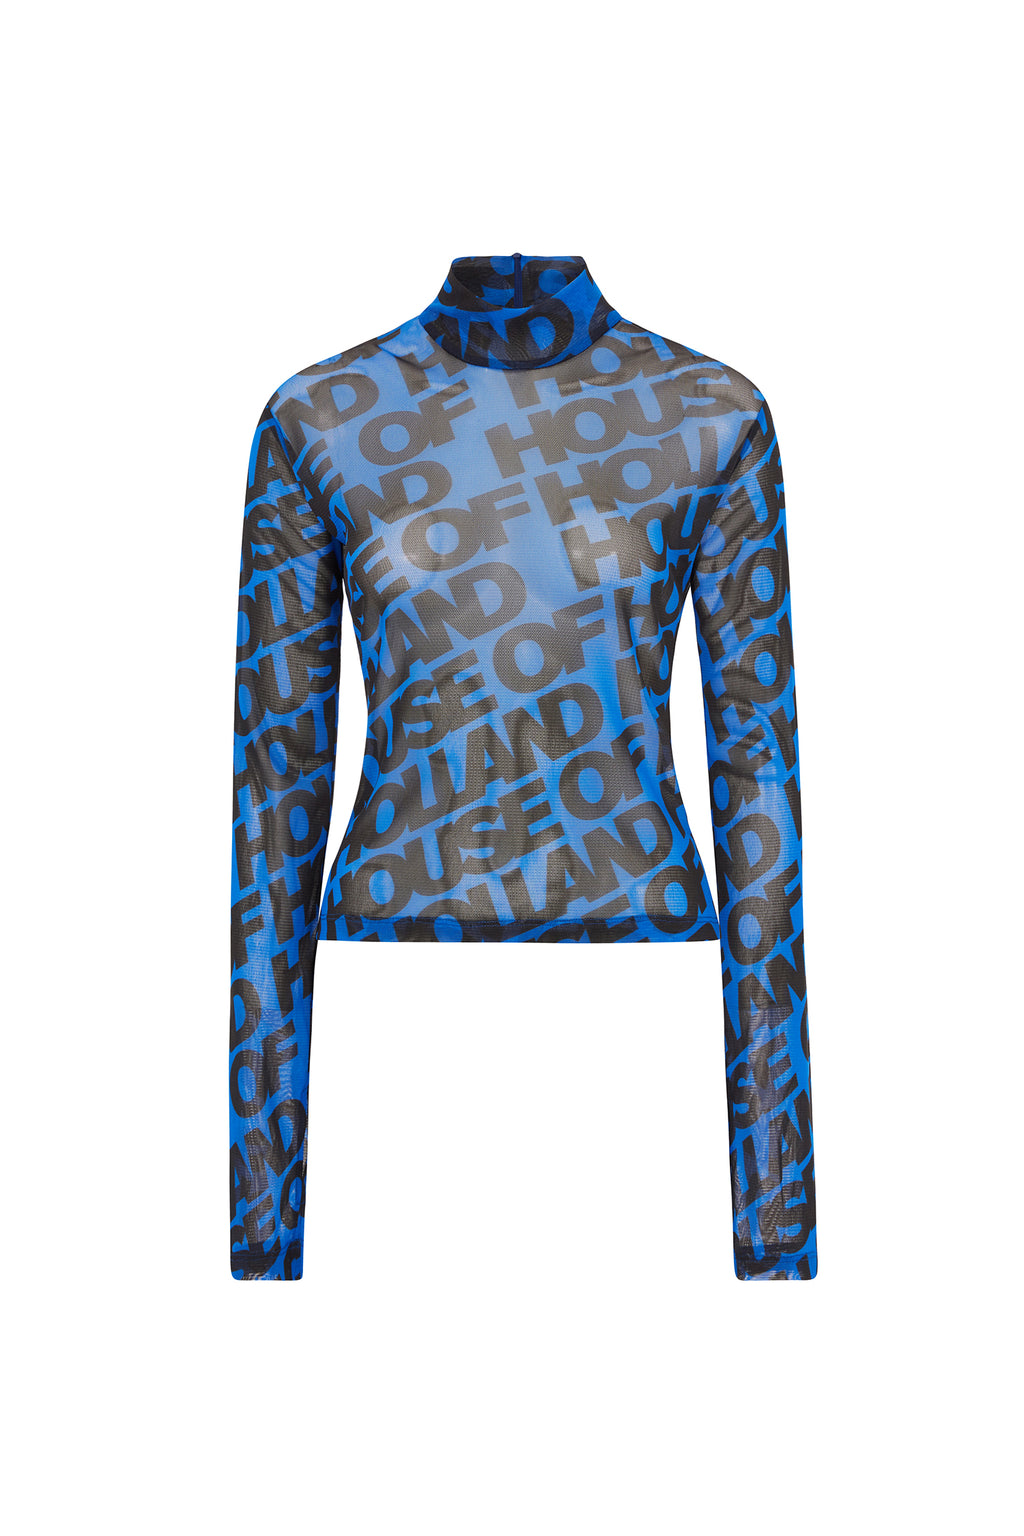 Printed 'House of Holland' Long Sleeve Mesh Top (Blue) by House of Holland